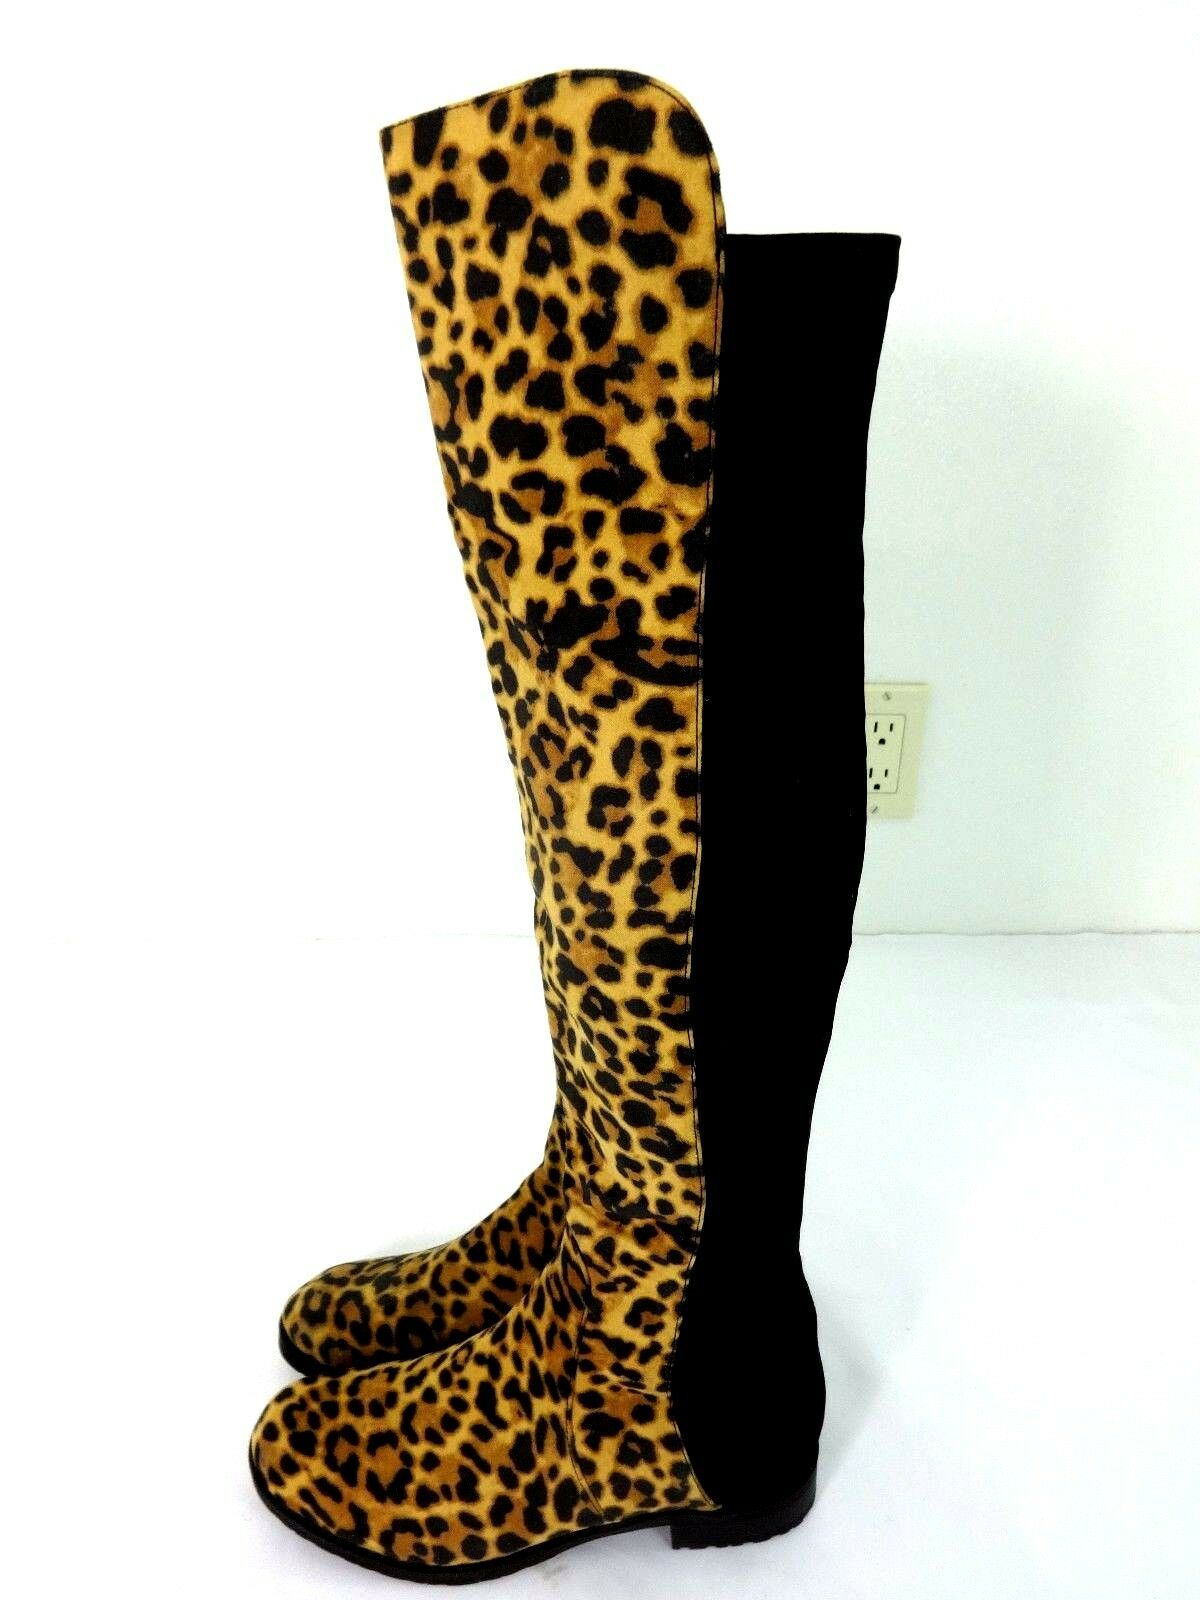 UNISA GILLEAN WOMENS LEOPARD OVER-THE-KNEE BOOTS SIZE 5.5M NEW W O BOX